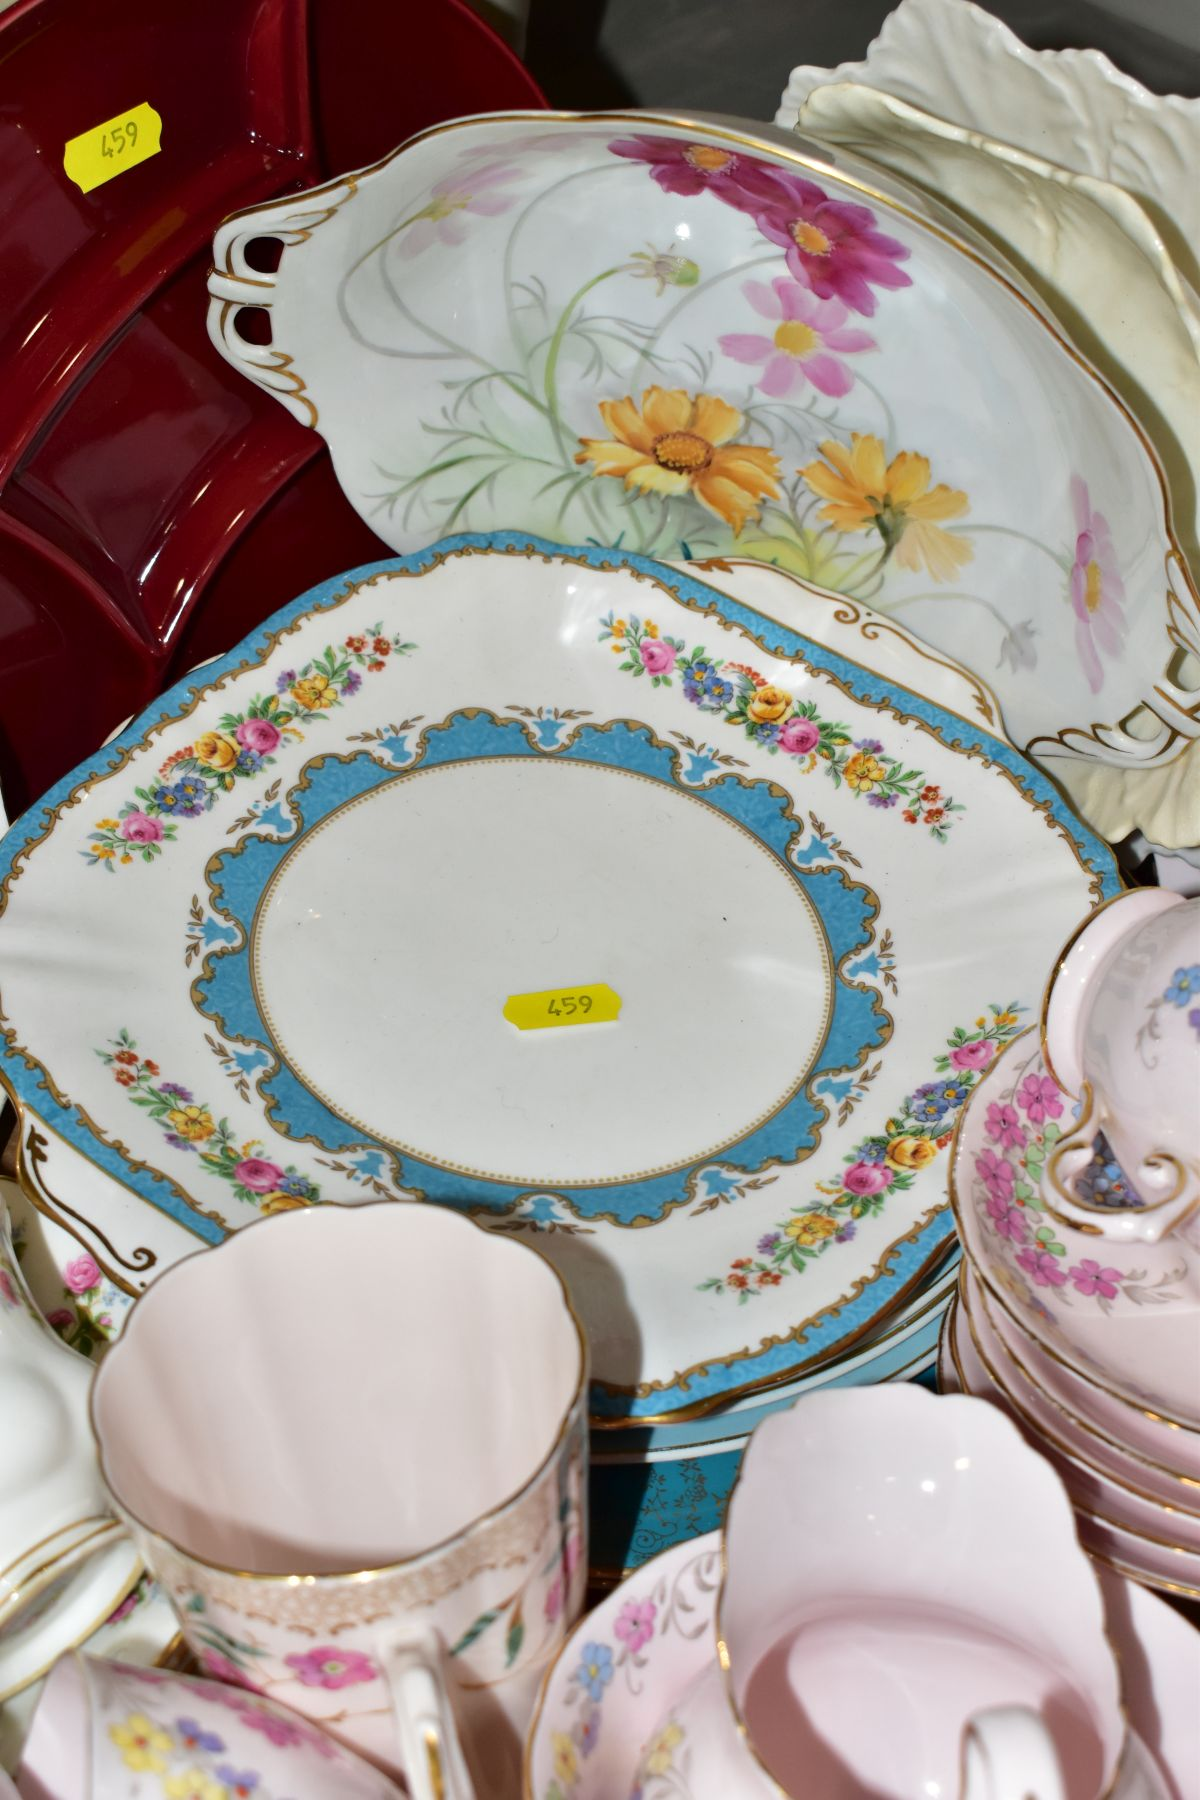 TWO BOXES OF WEDGWOOD ROYAL WORCESTER, ROYAL ALBERT AND TUSCAN CHINA TEA AND DINNER WARES, including - Image 8 of 10